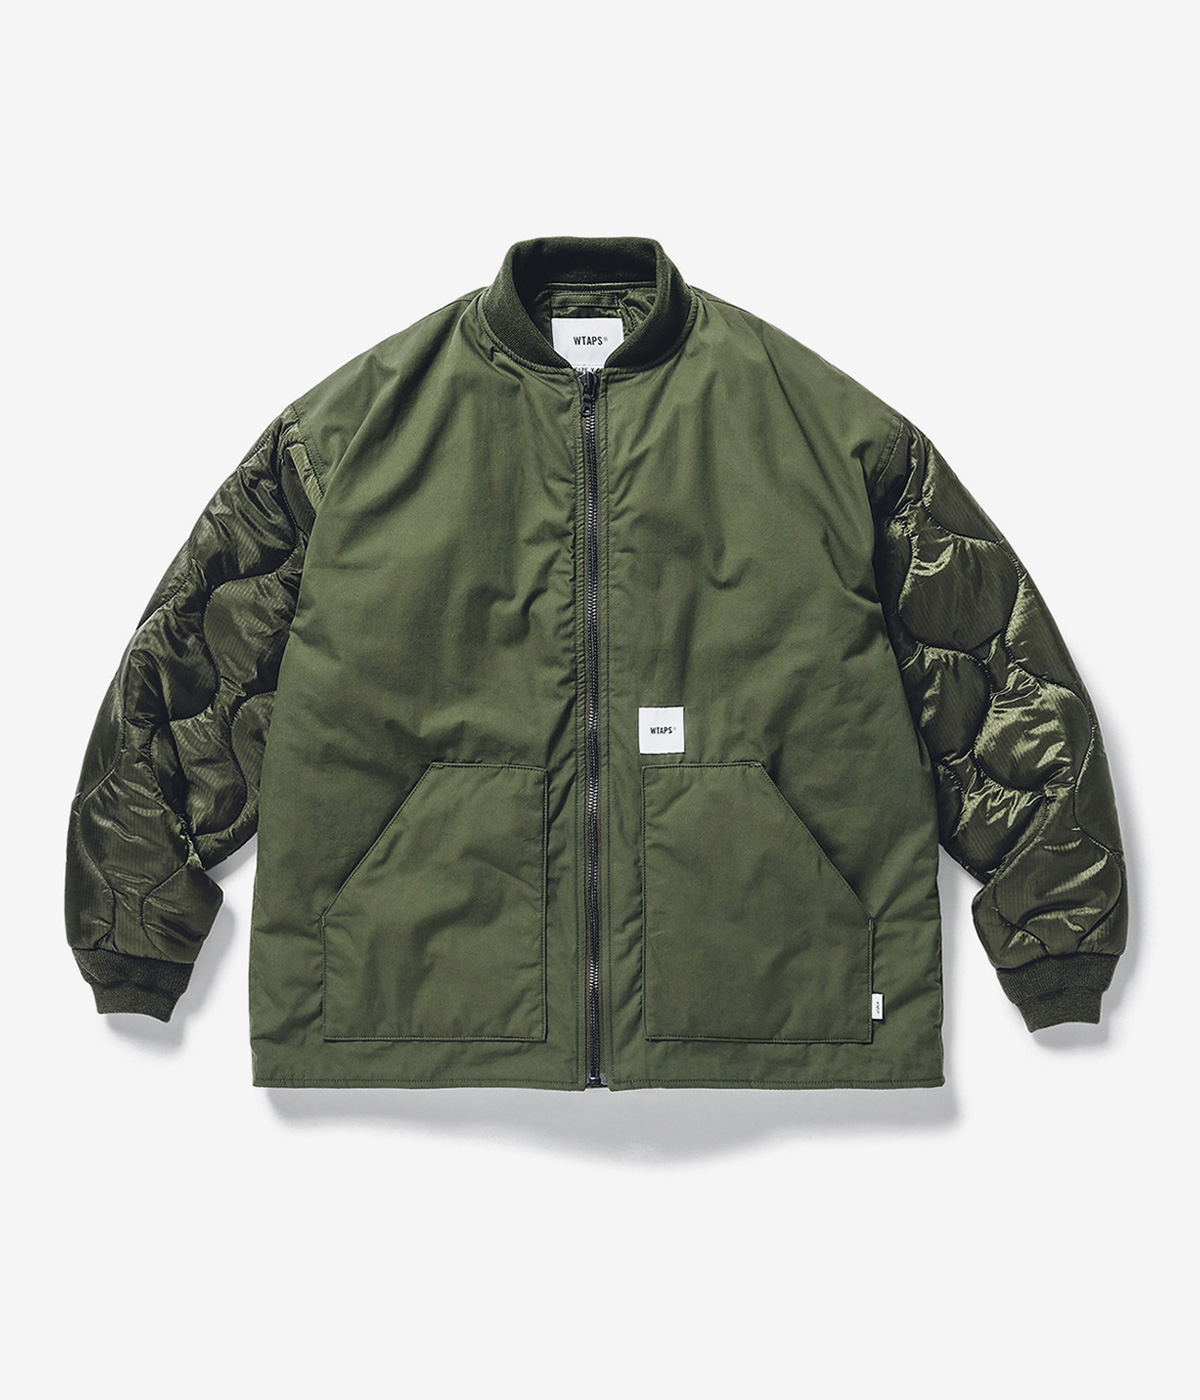 SHEDS / JACKET. COTTON. WEATHER